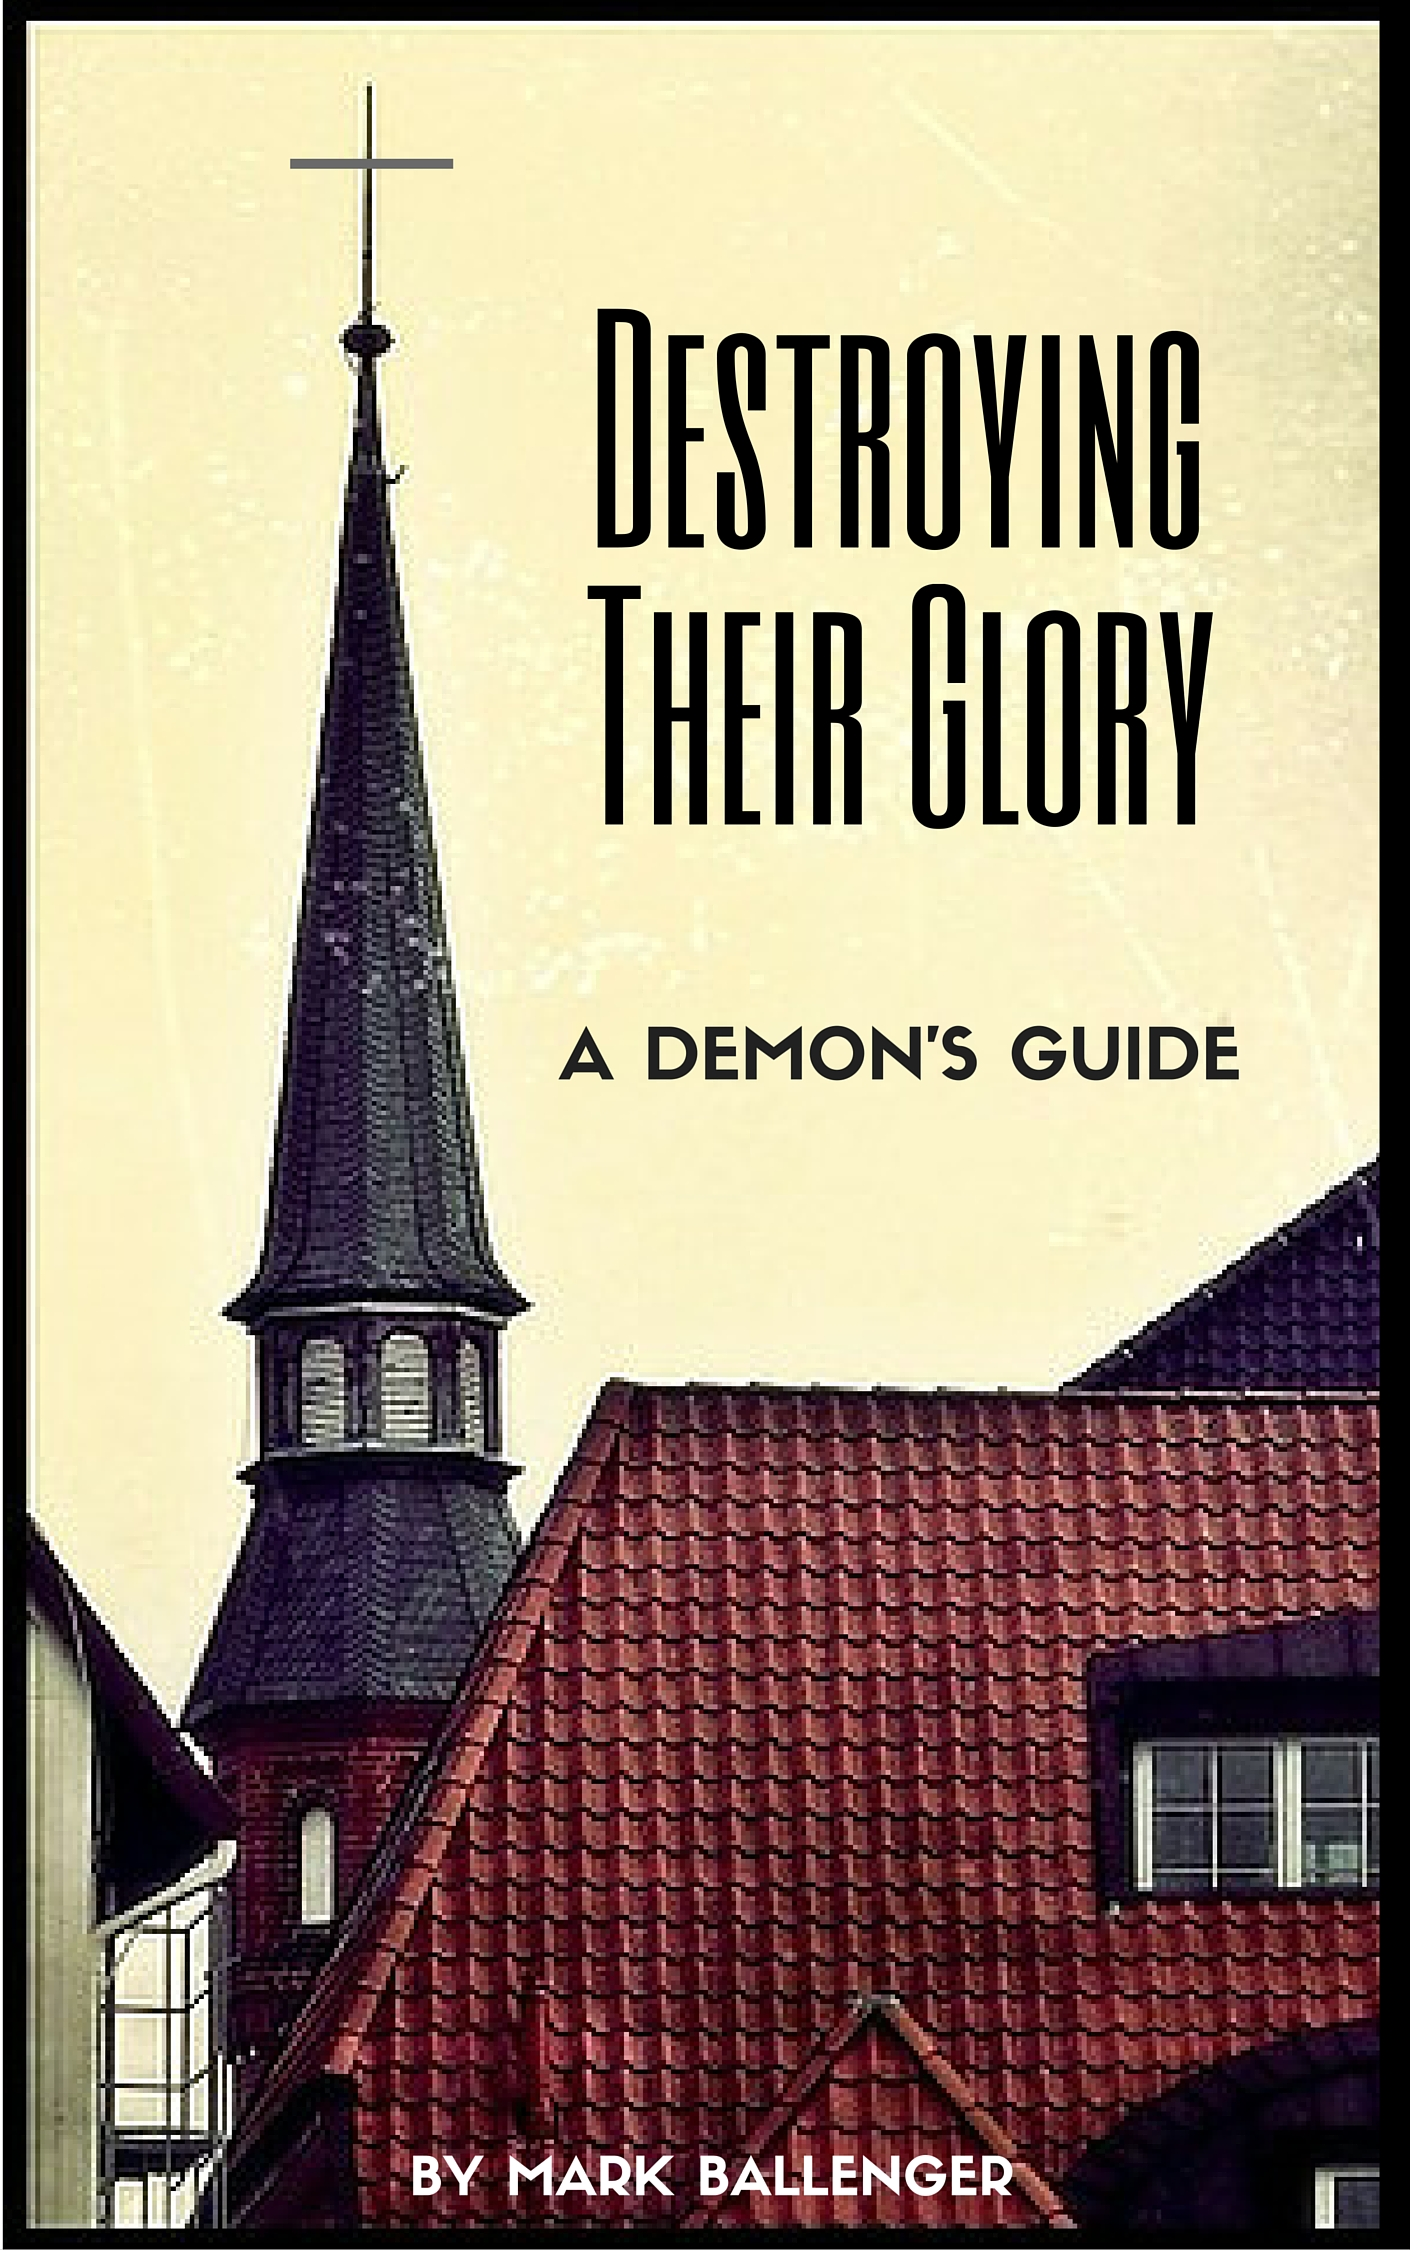 Destroying their glory, by mark ballener